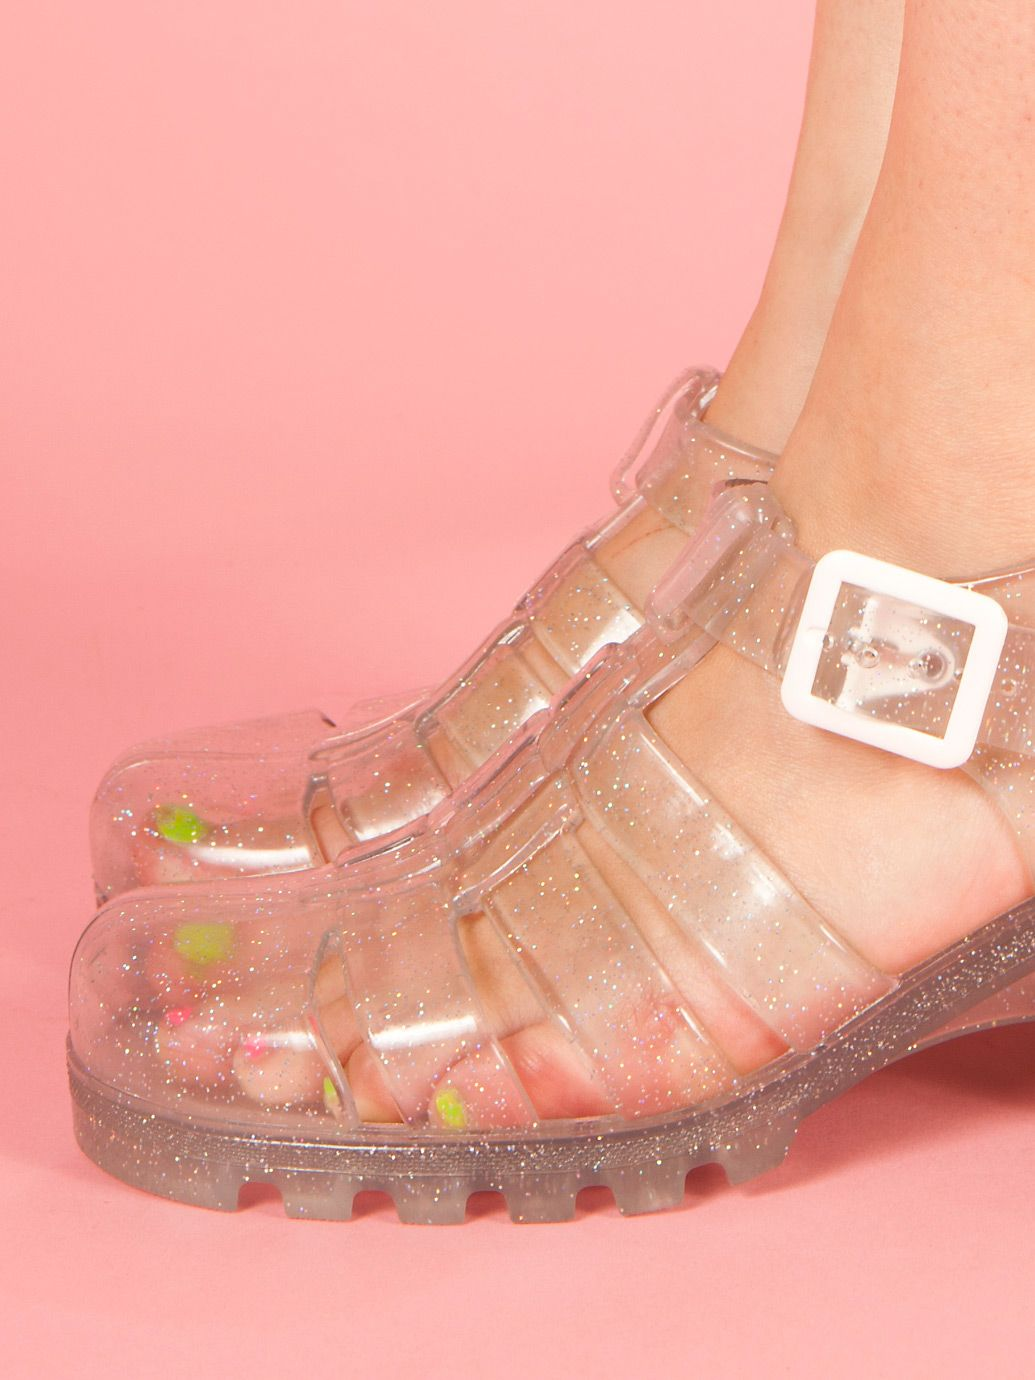 c6a3cdccd797 Juju Babe Jelly Sandals from American Apparel.